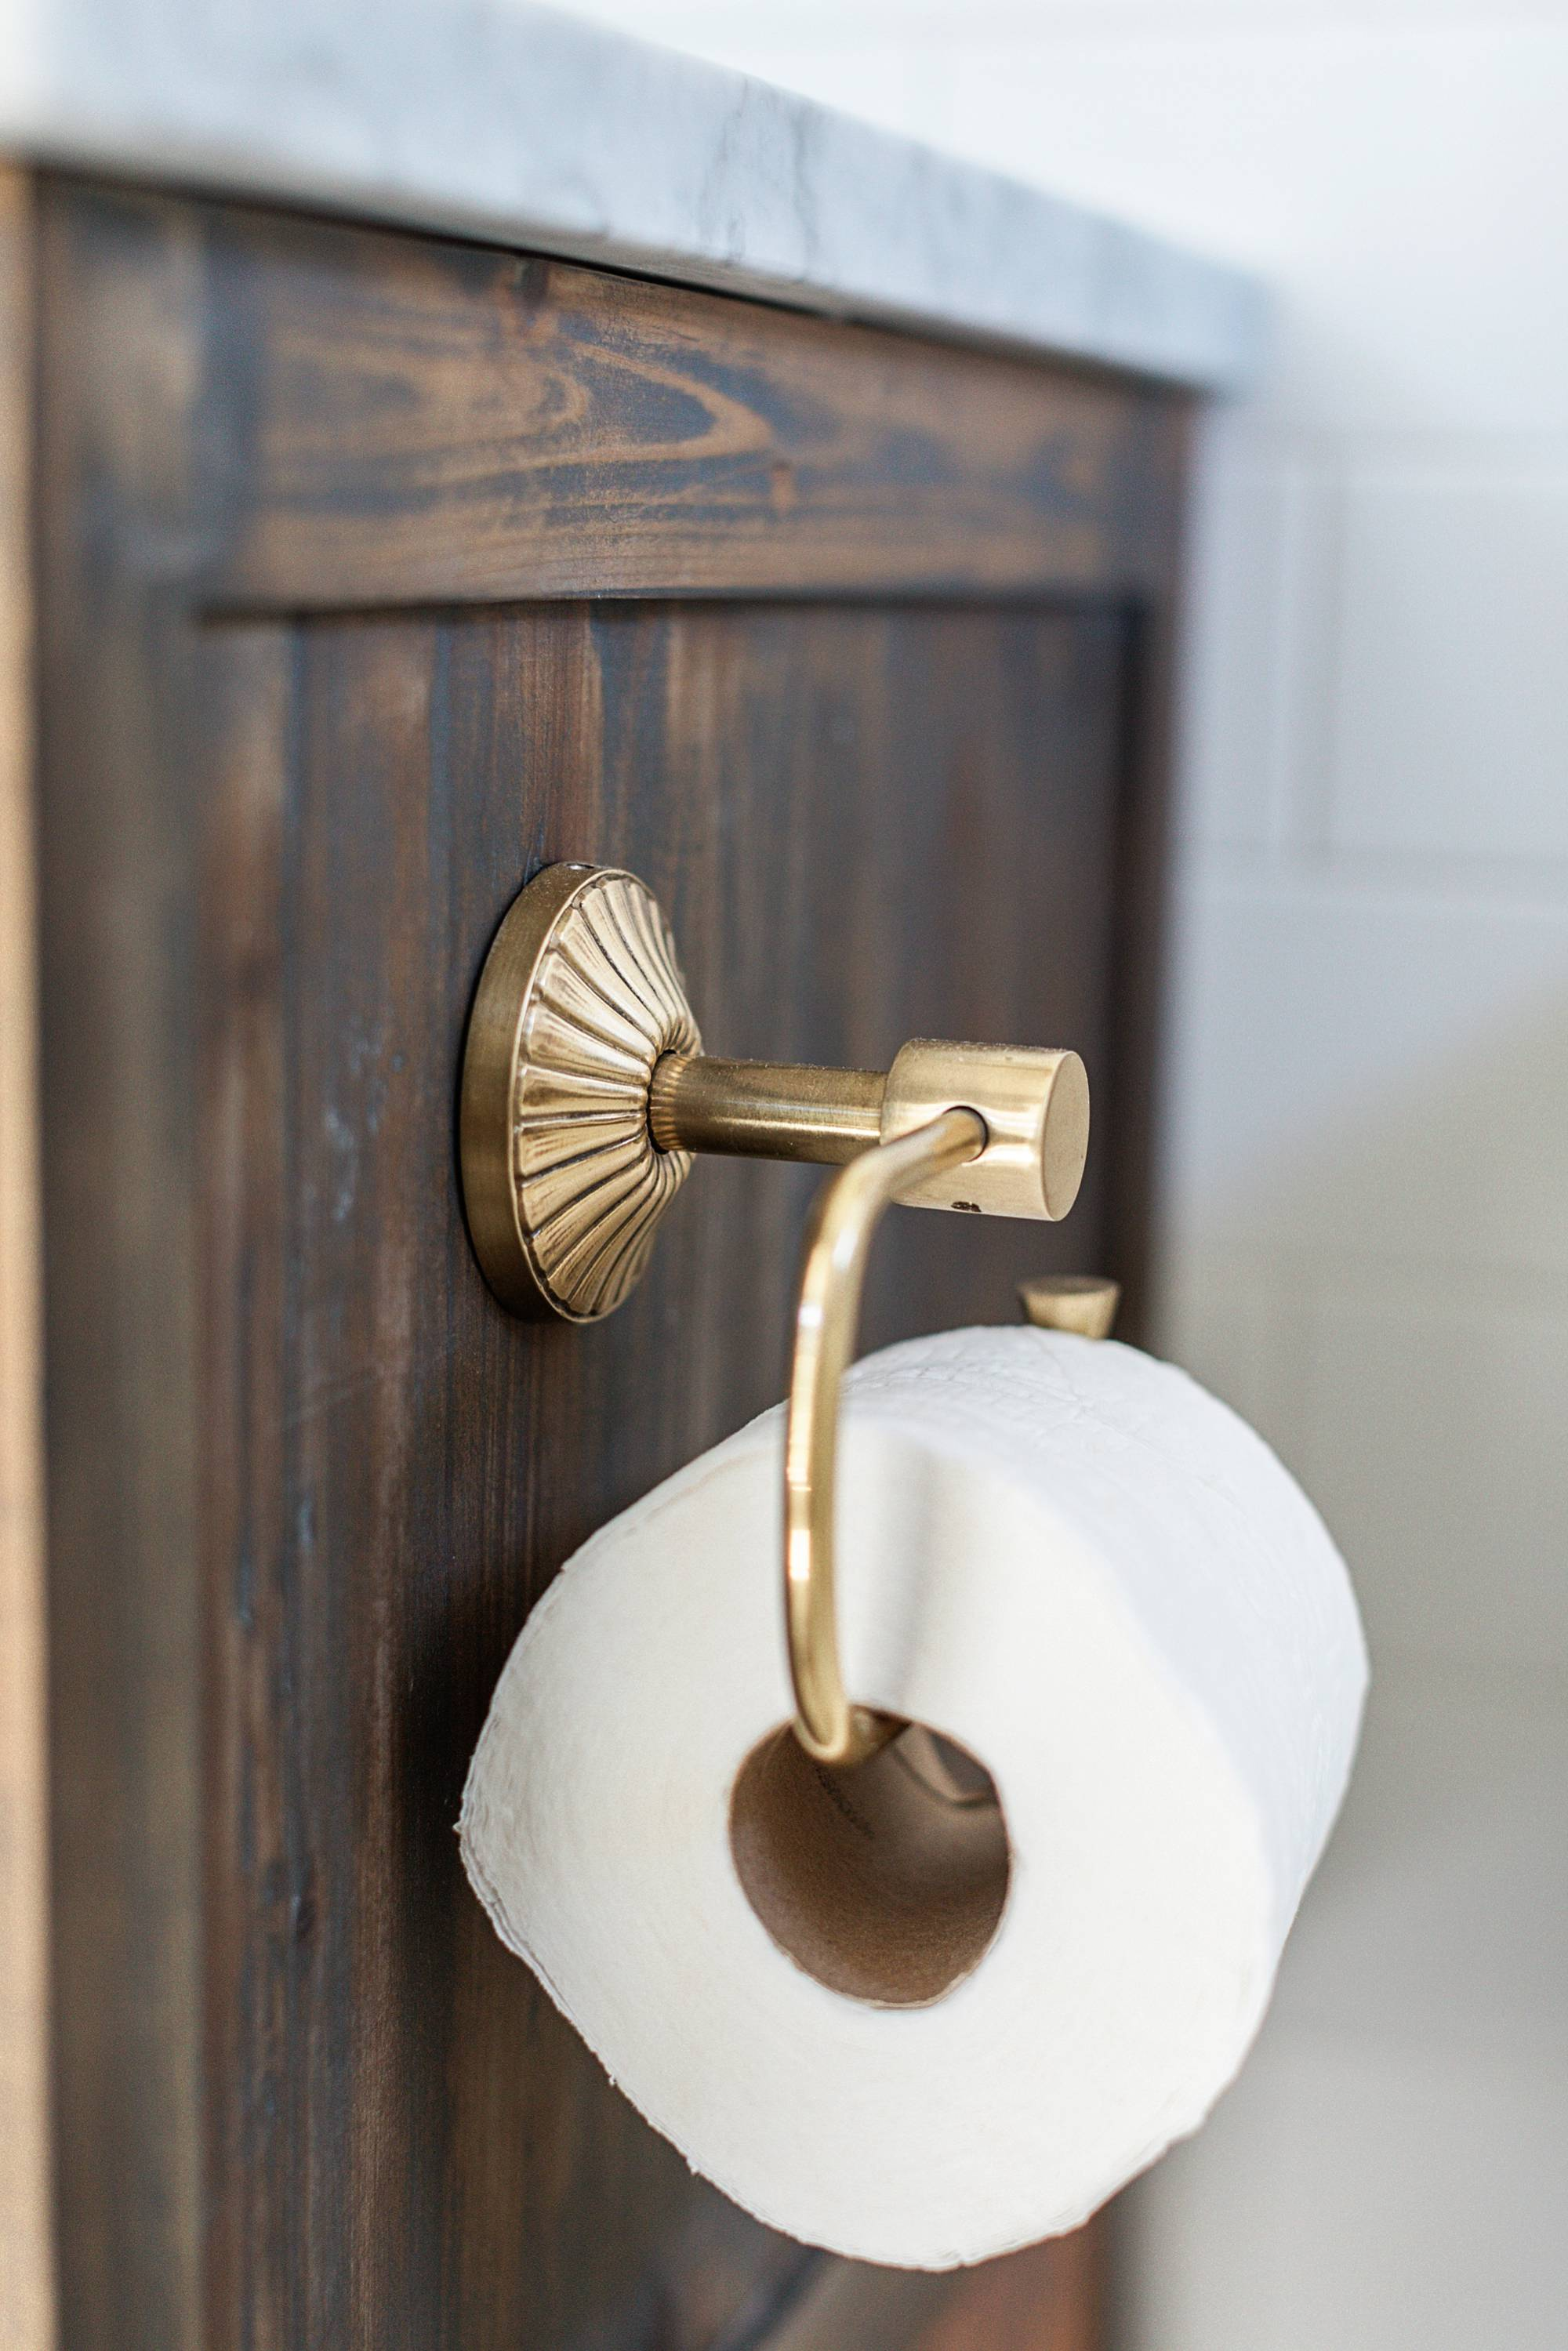 toilet paper roll holder brass from Anthropologie